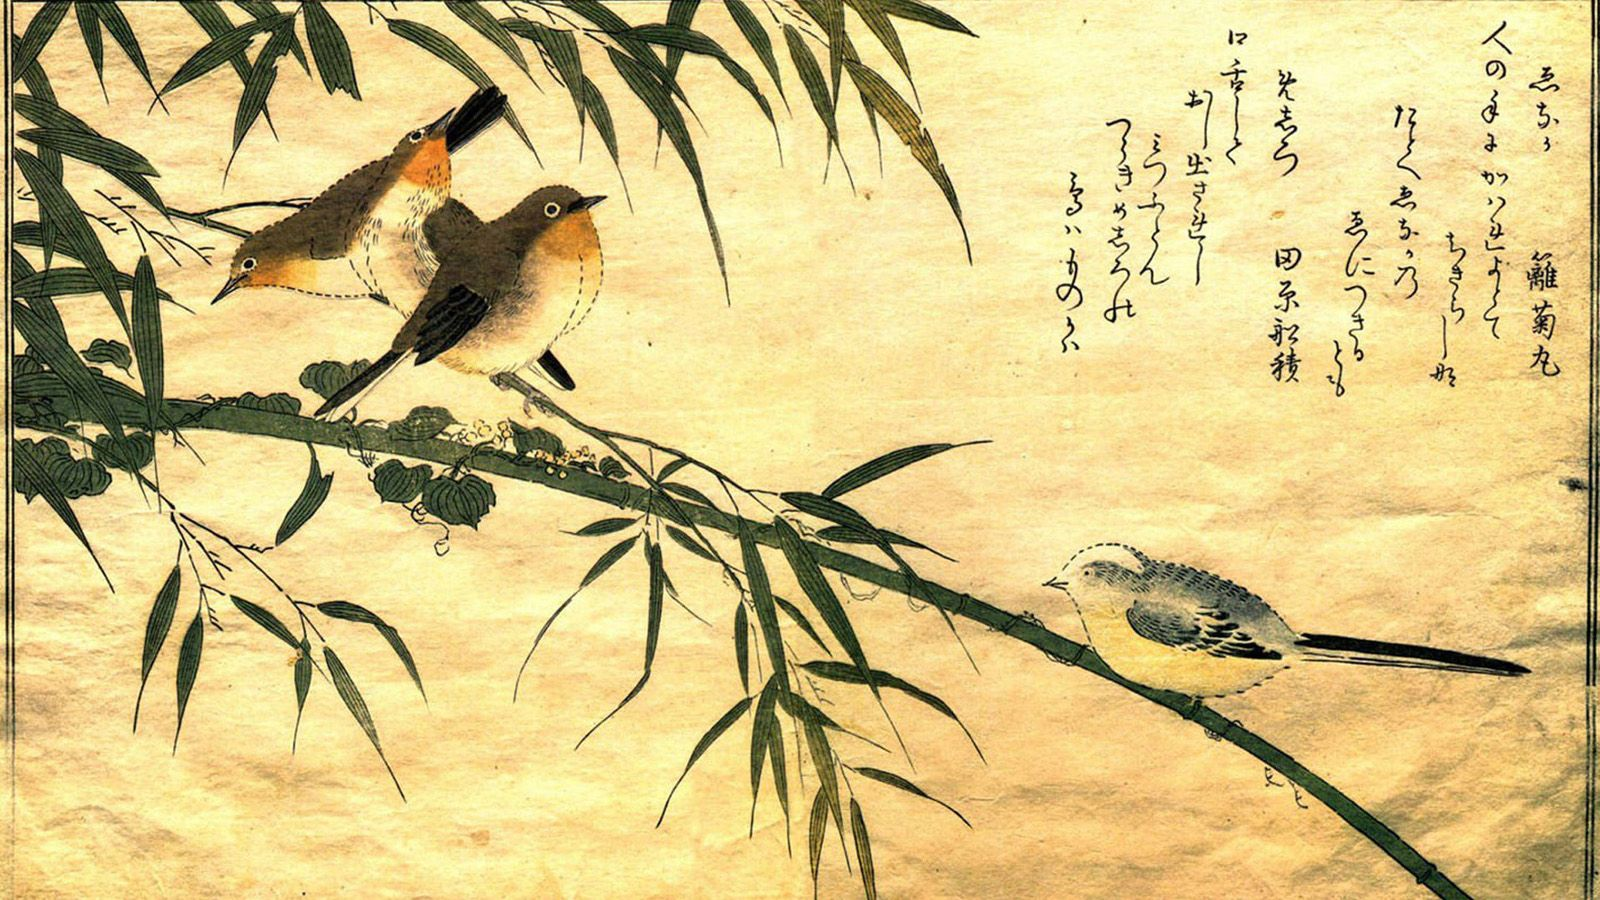 Koi Fish 3d Wallpaper Free Download 72 Best Free Traditional Japanese Art Wallpapers